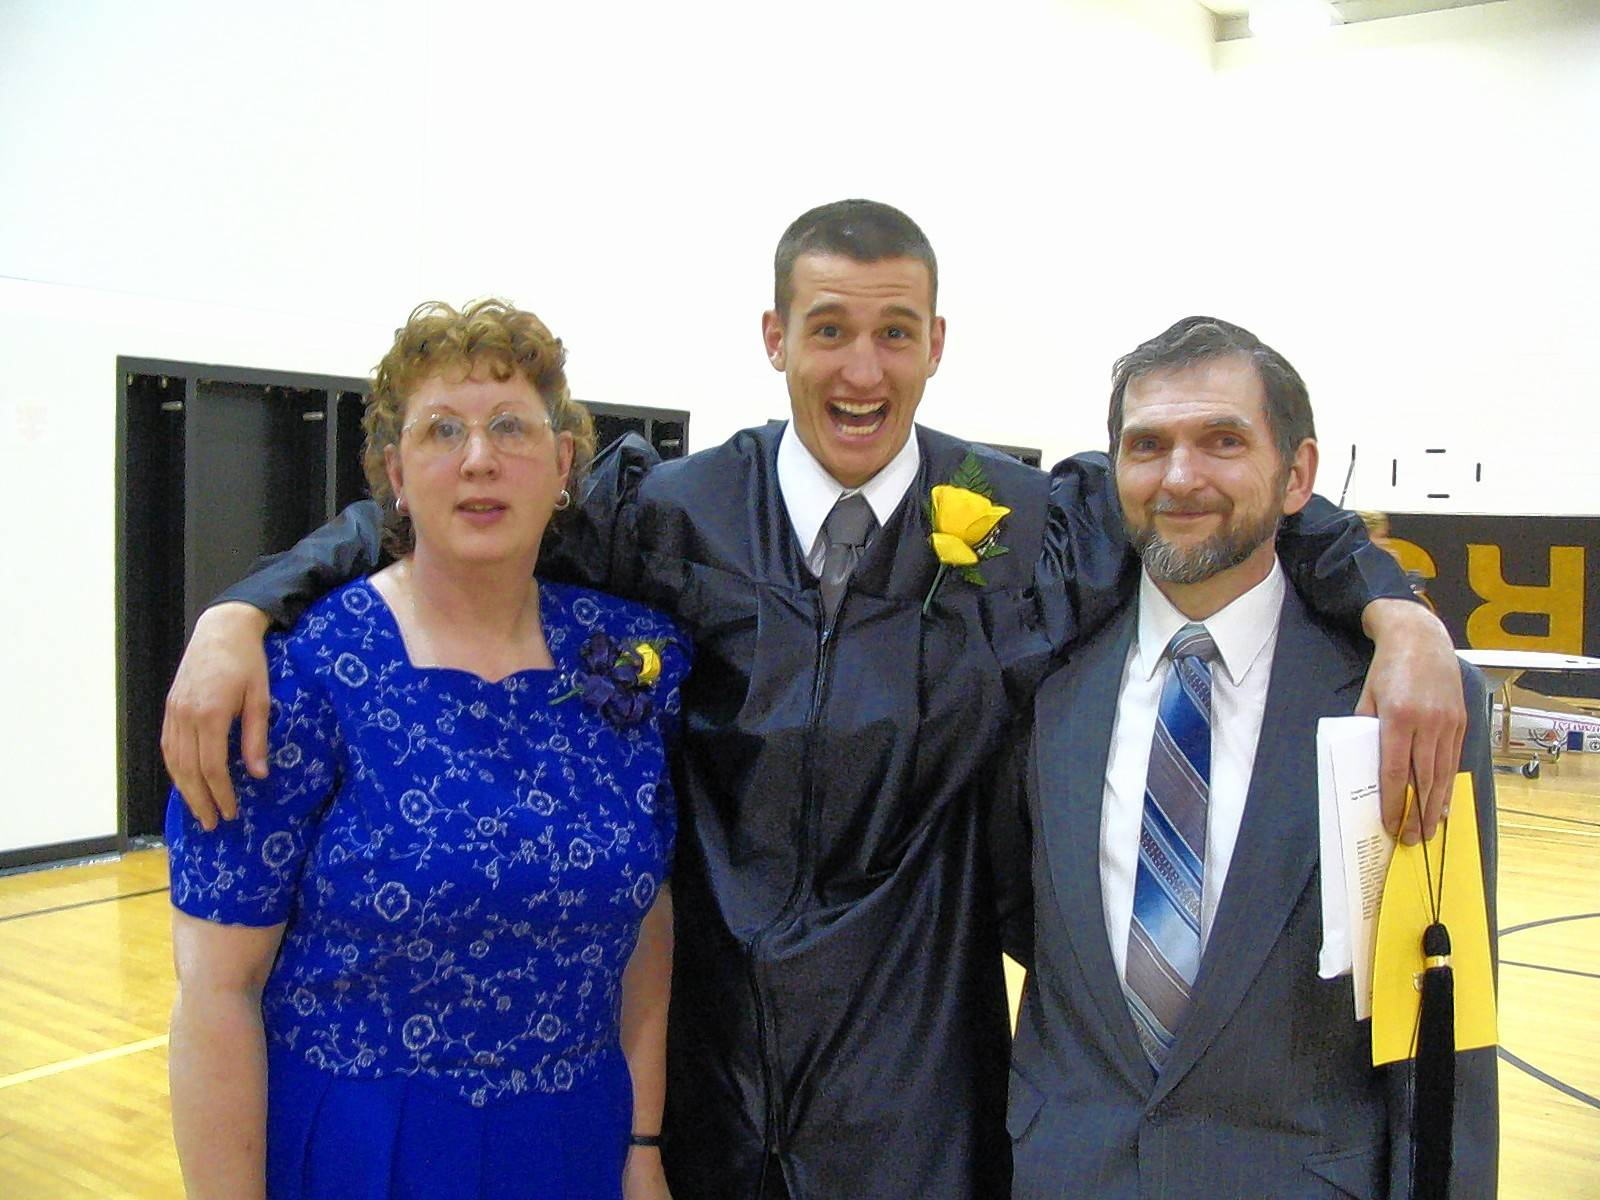 Ross A. McGinnis, center, at his high school graduation with his parents Romayne and Thomas McGinnis.